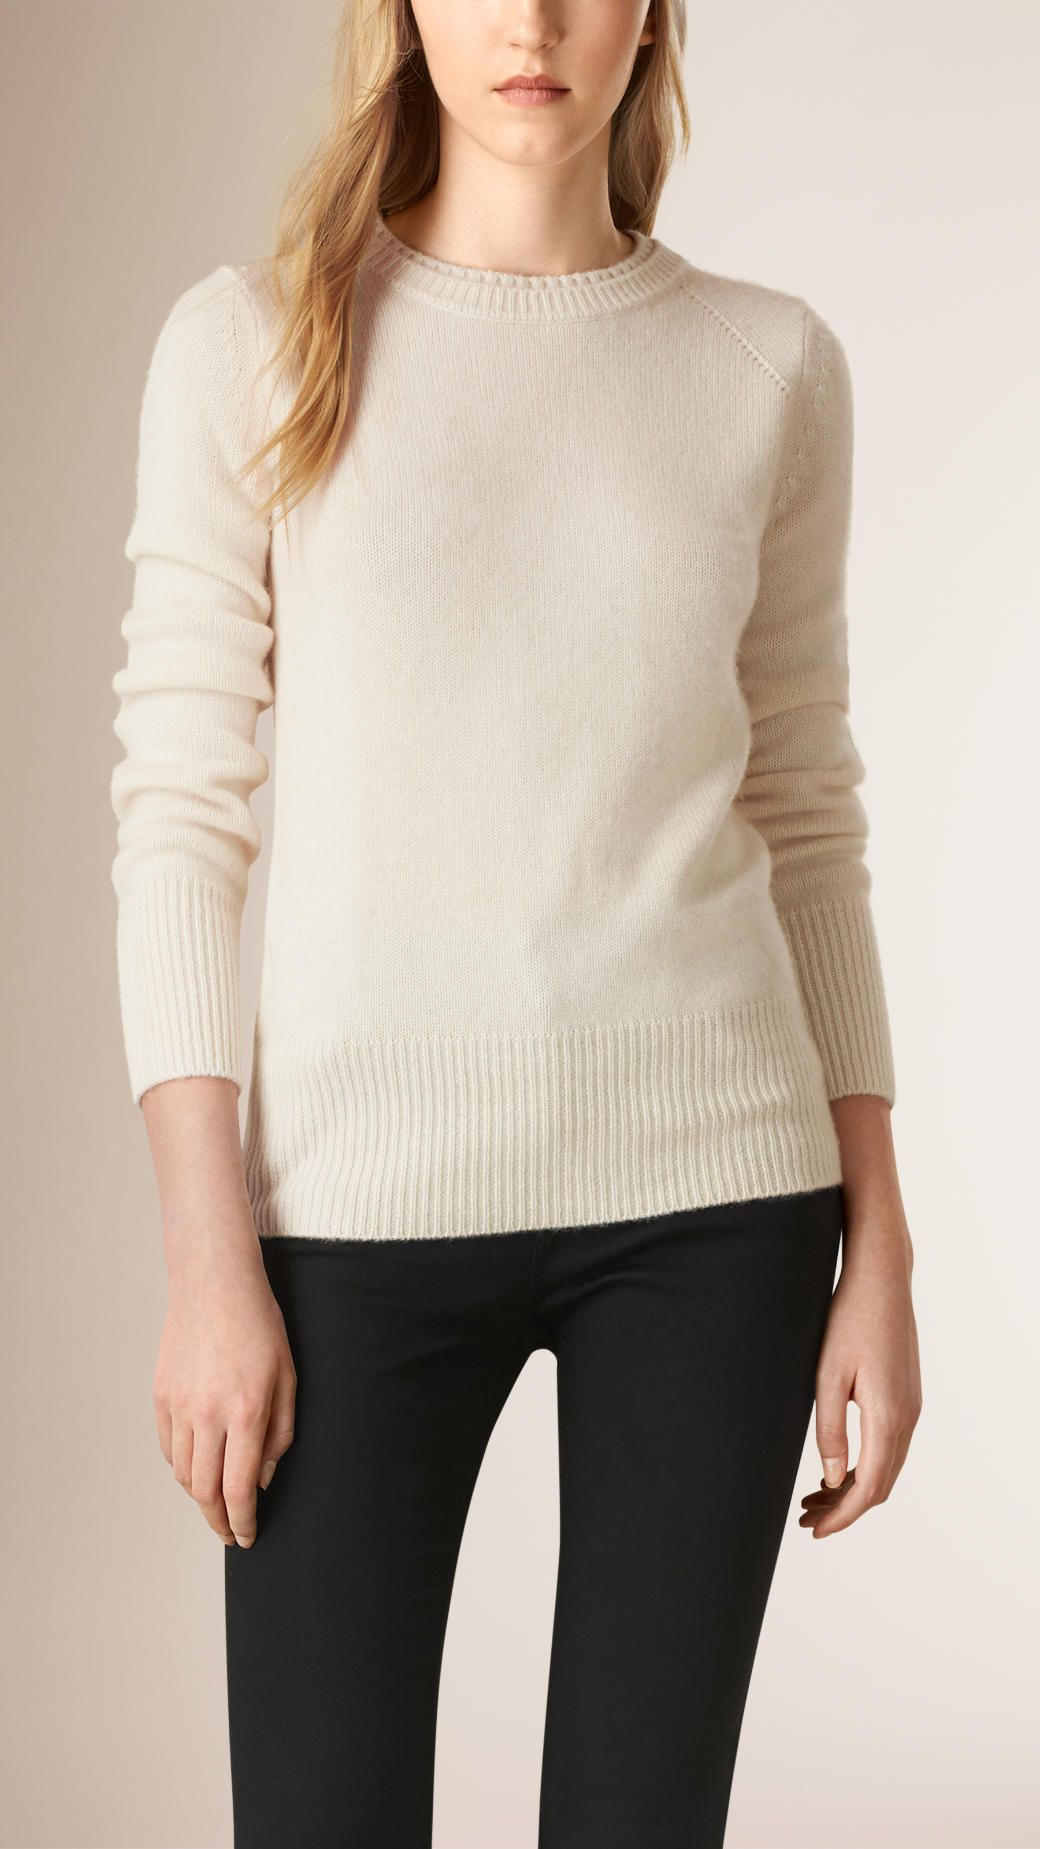 7397074e08866e Women's Clothing   Want to wear   Sweaters, Cashmere sweaters ...